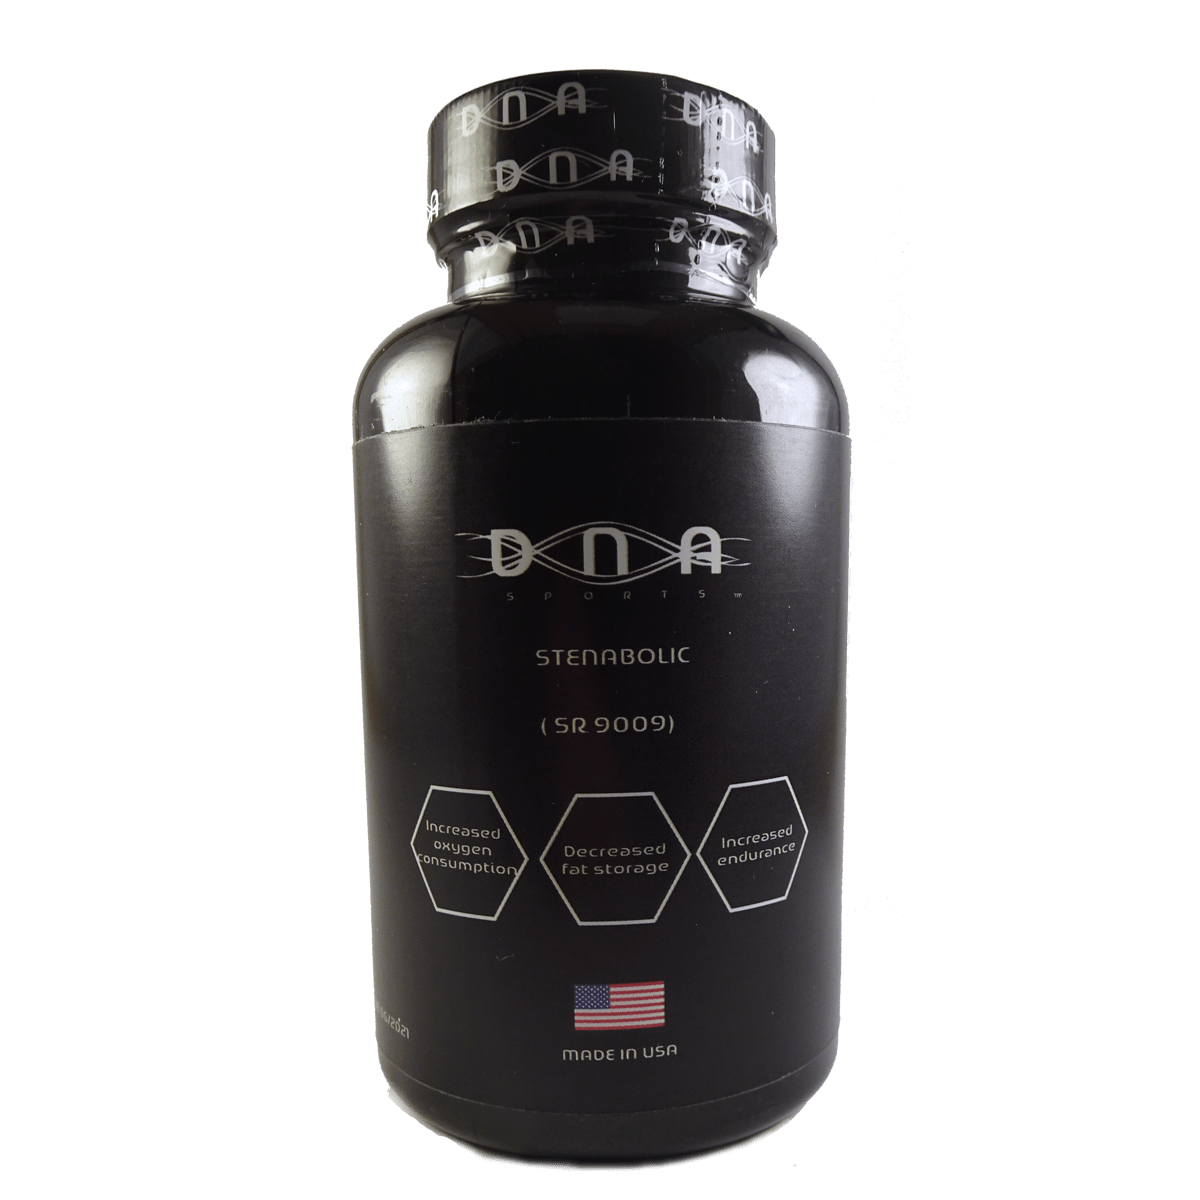 DNA sports Stenabolic SR9009